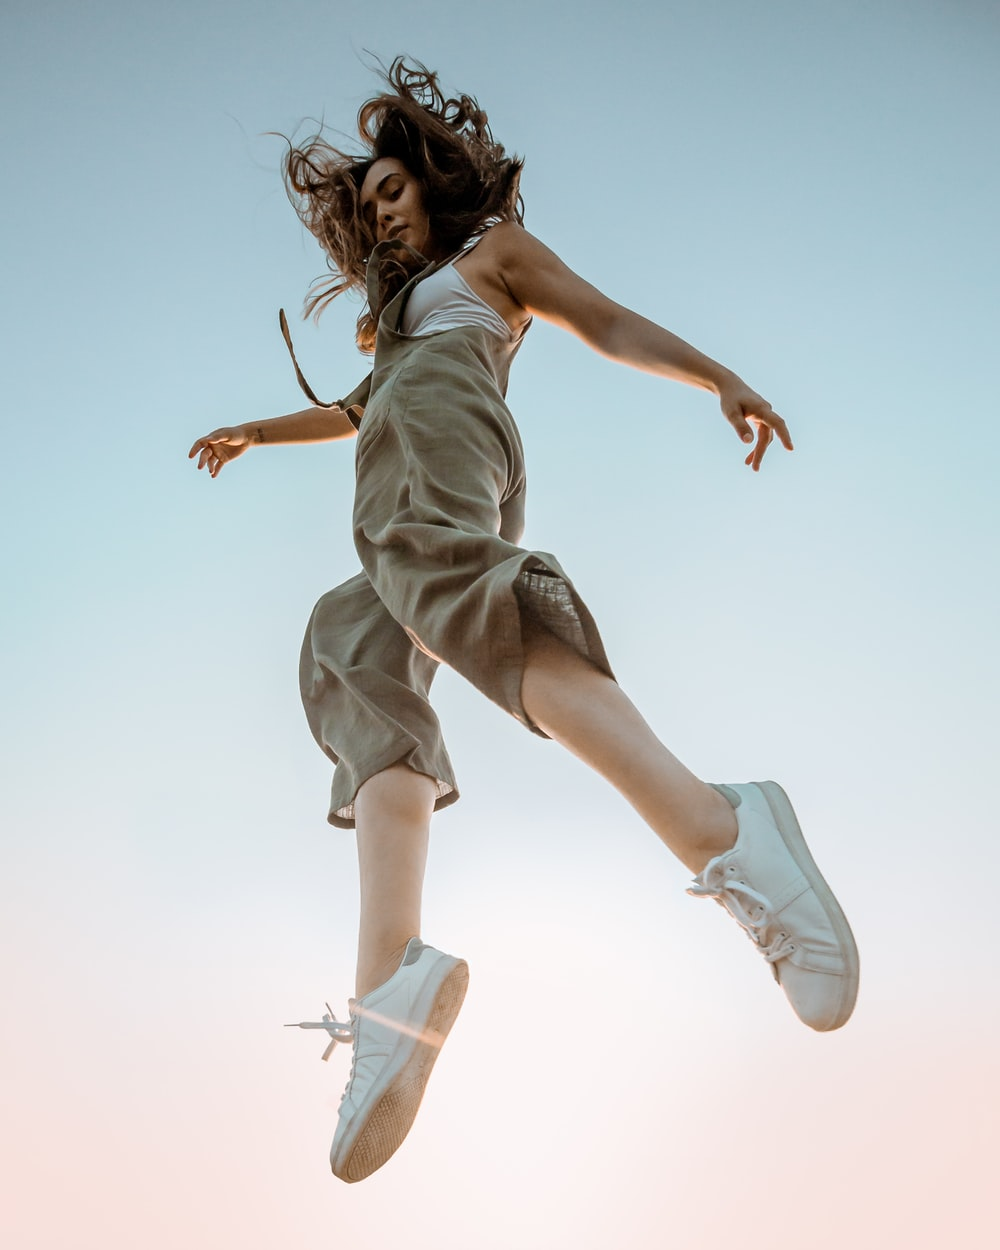 woman in white dress jumping